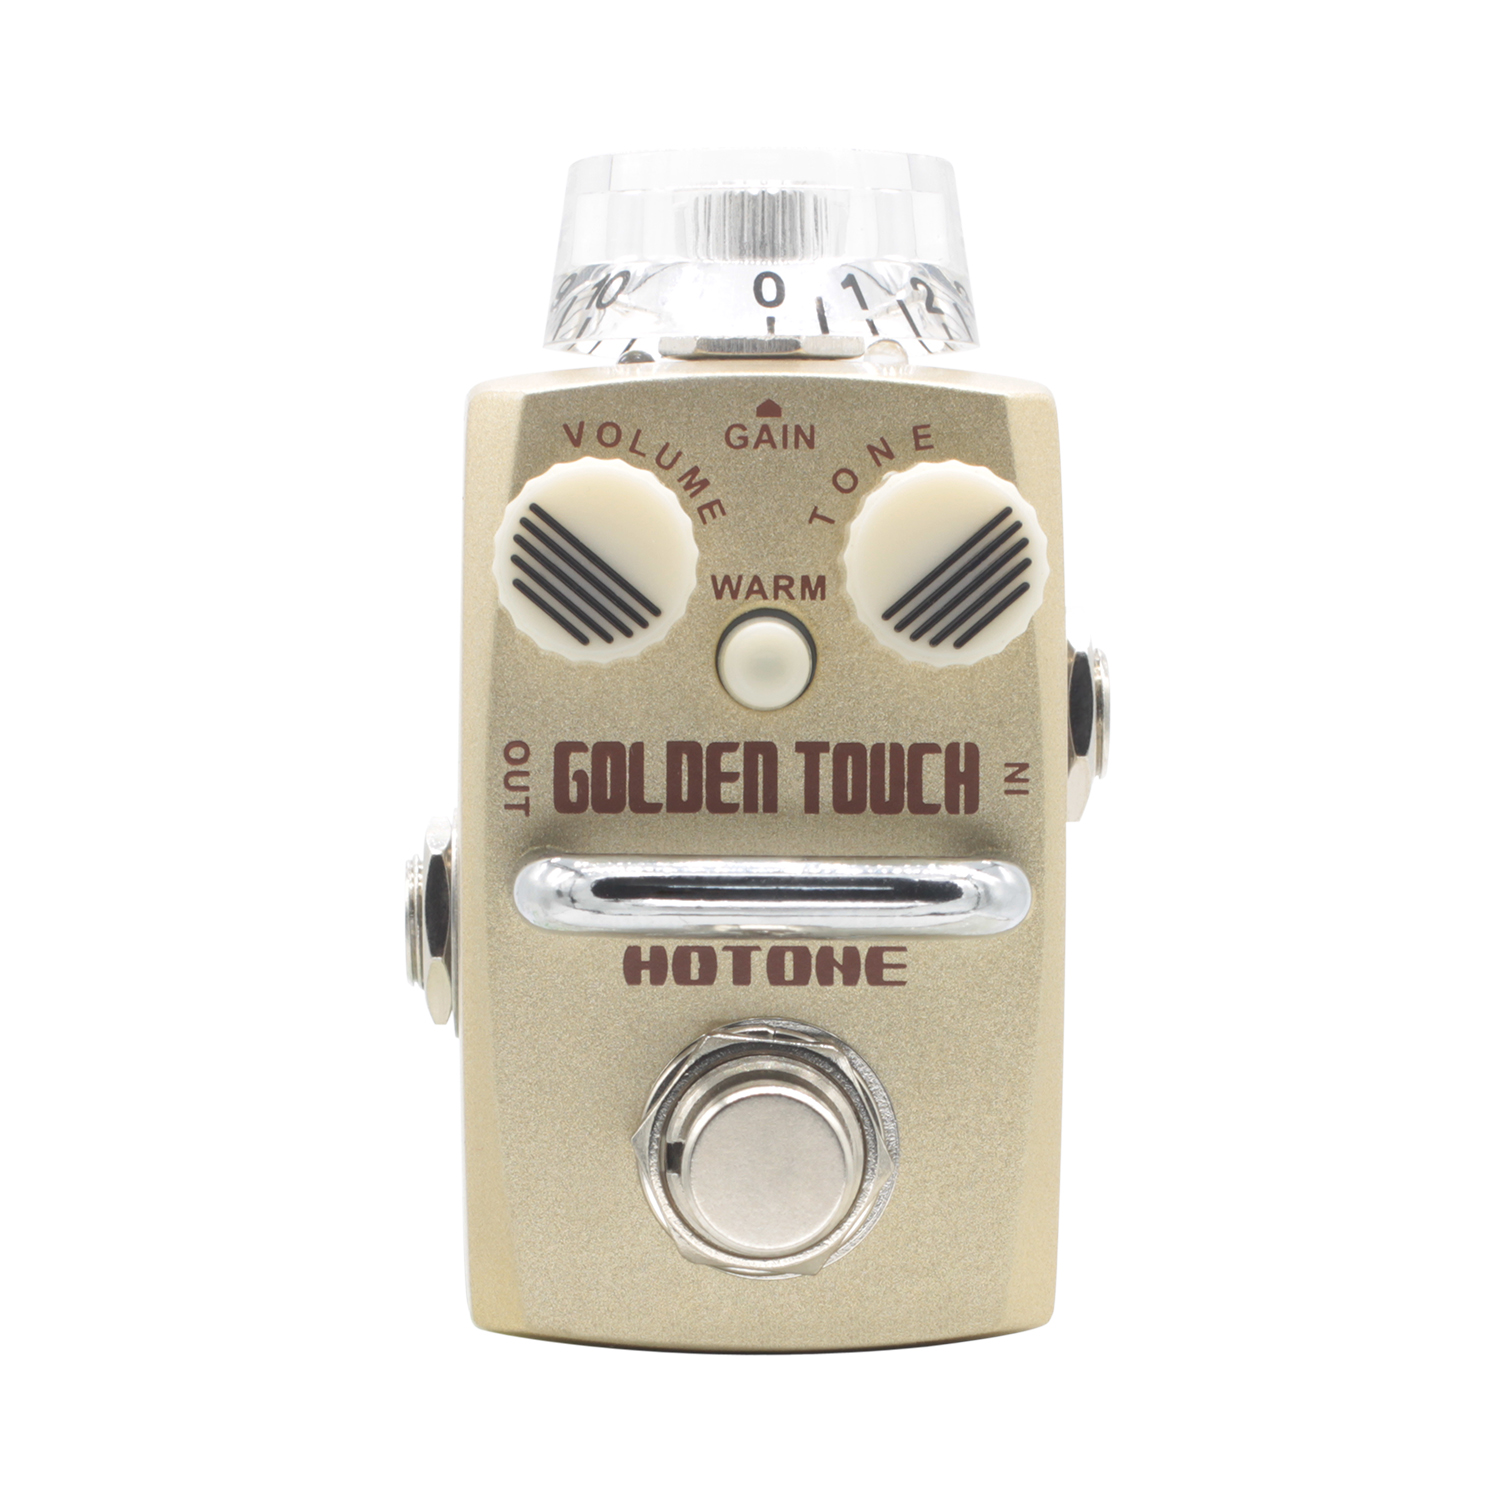 Hotone Golden Touch Overdrive Guitar Effect Pedal True Bypass Effects for Electric Guitar Warm Natural Sweet Sound overdrive guitar effect pedal true bypass with 1590b green case electric guitar stompbox pedals od1 kits